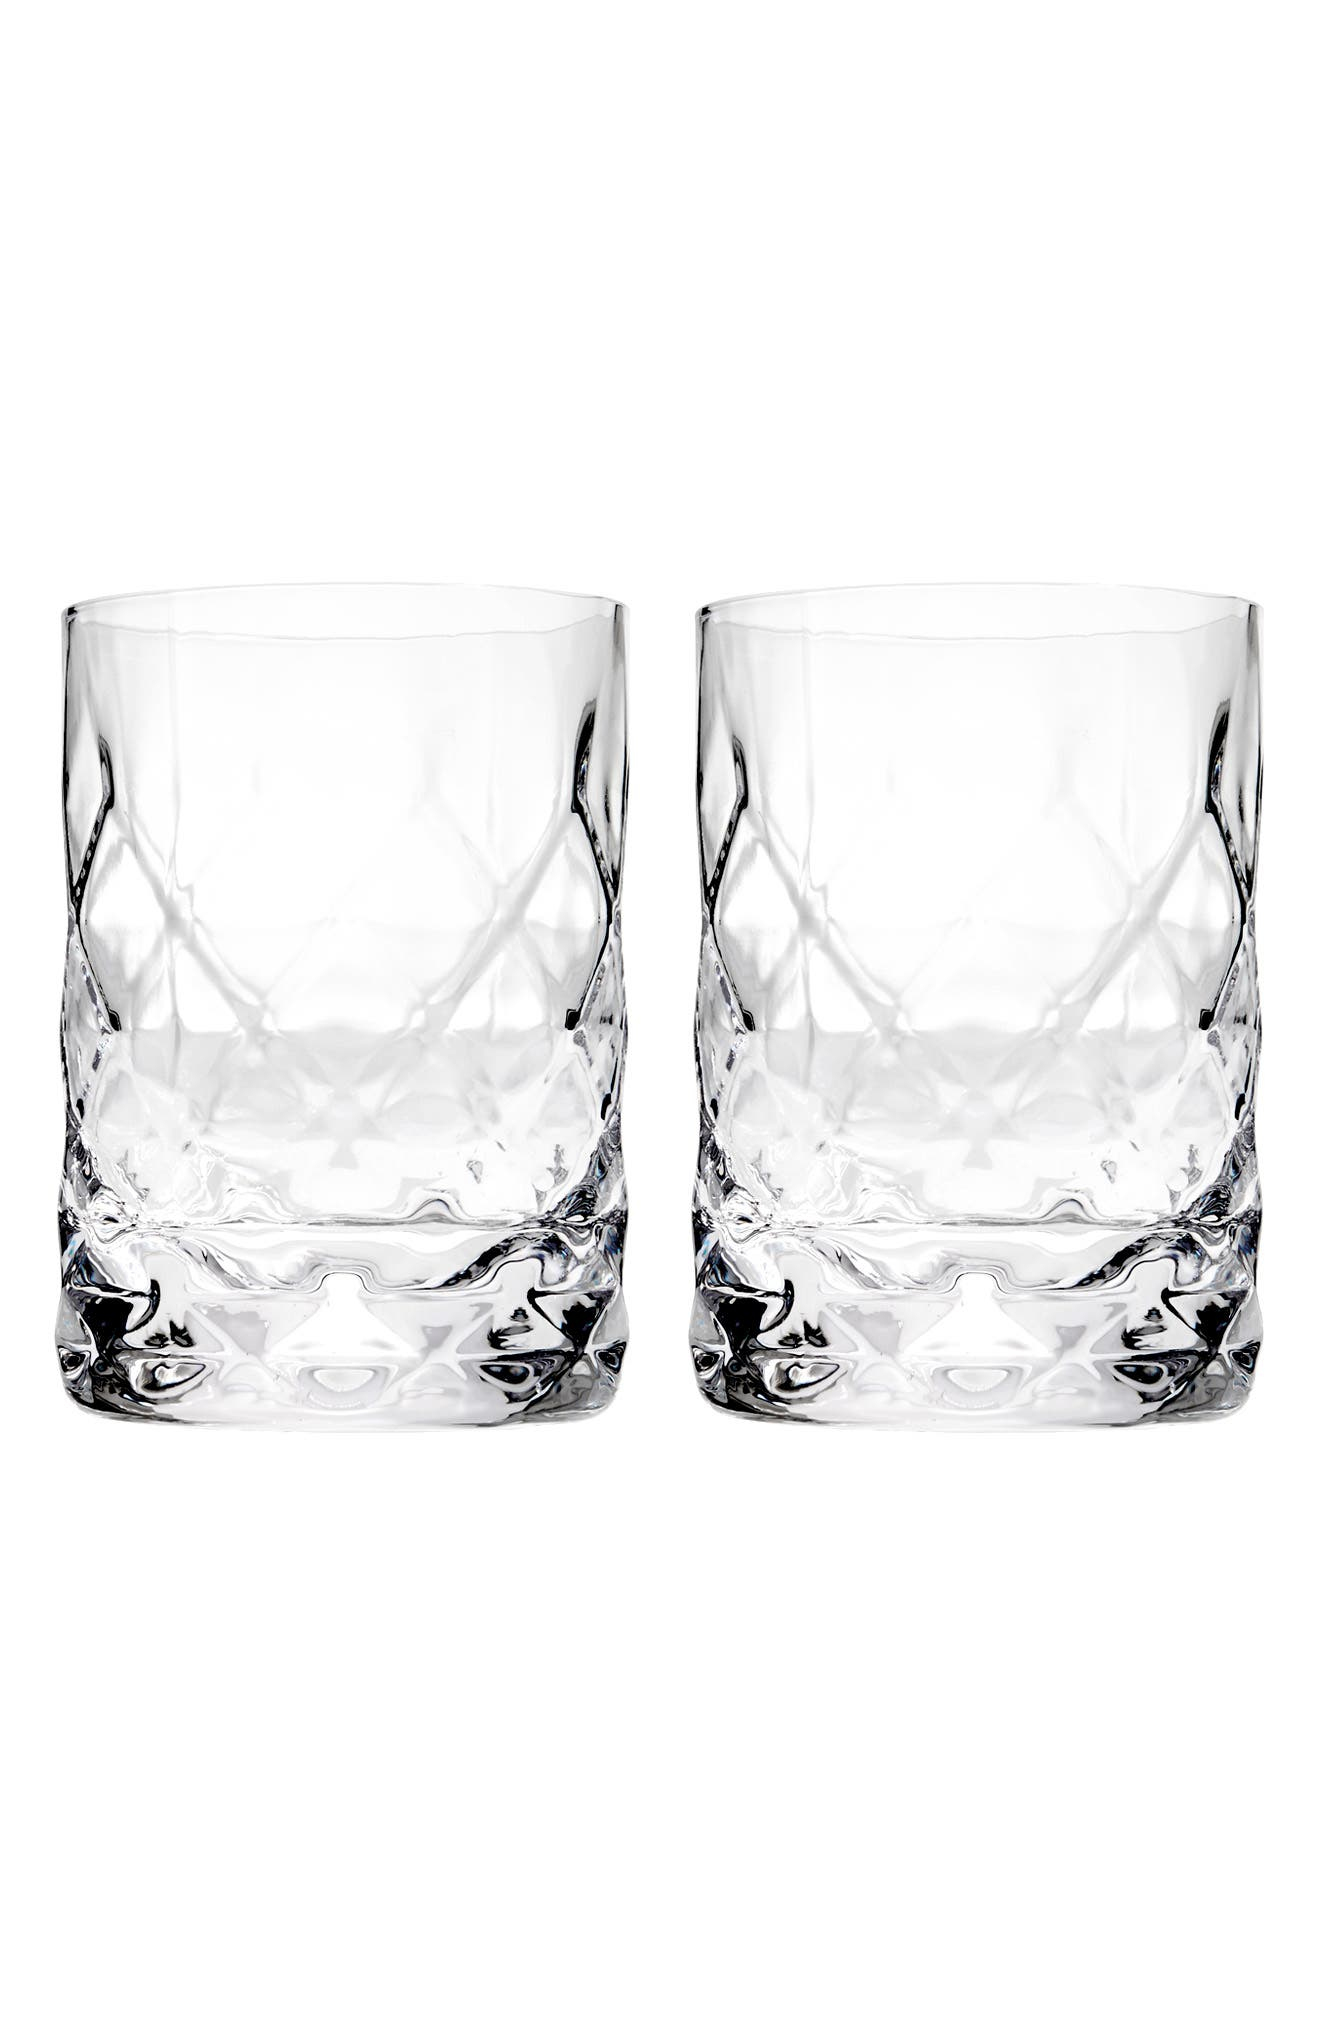 Set of 2 Double Old Fashioned Glasses,                             Main thumbnail 1, color,                             100